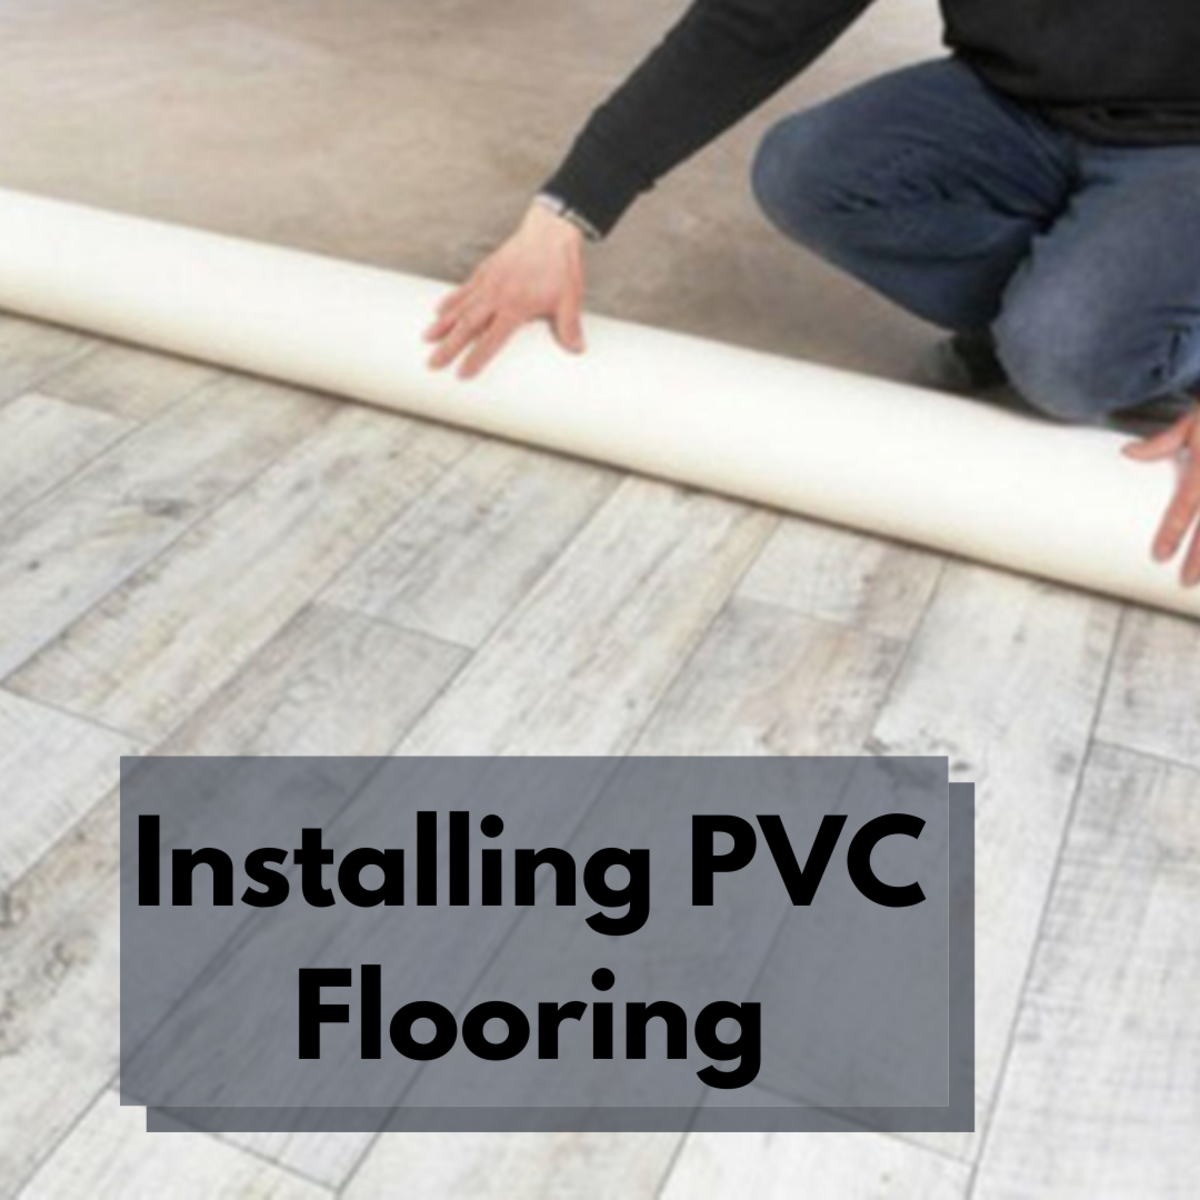 Learn the steps involved in installing your own PVC flooring